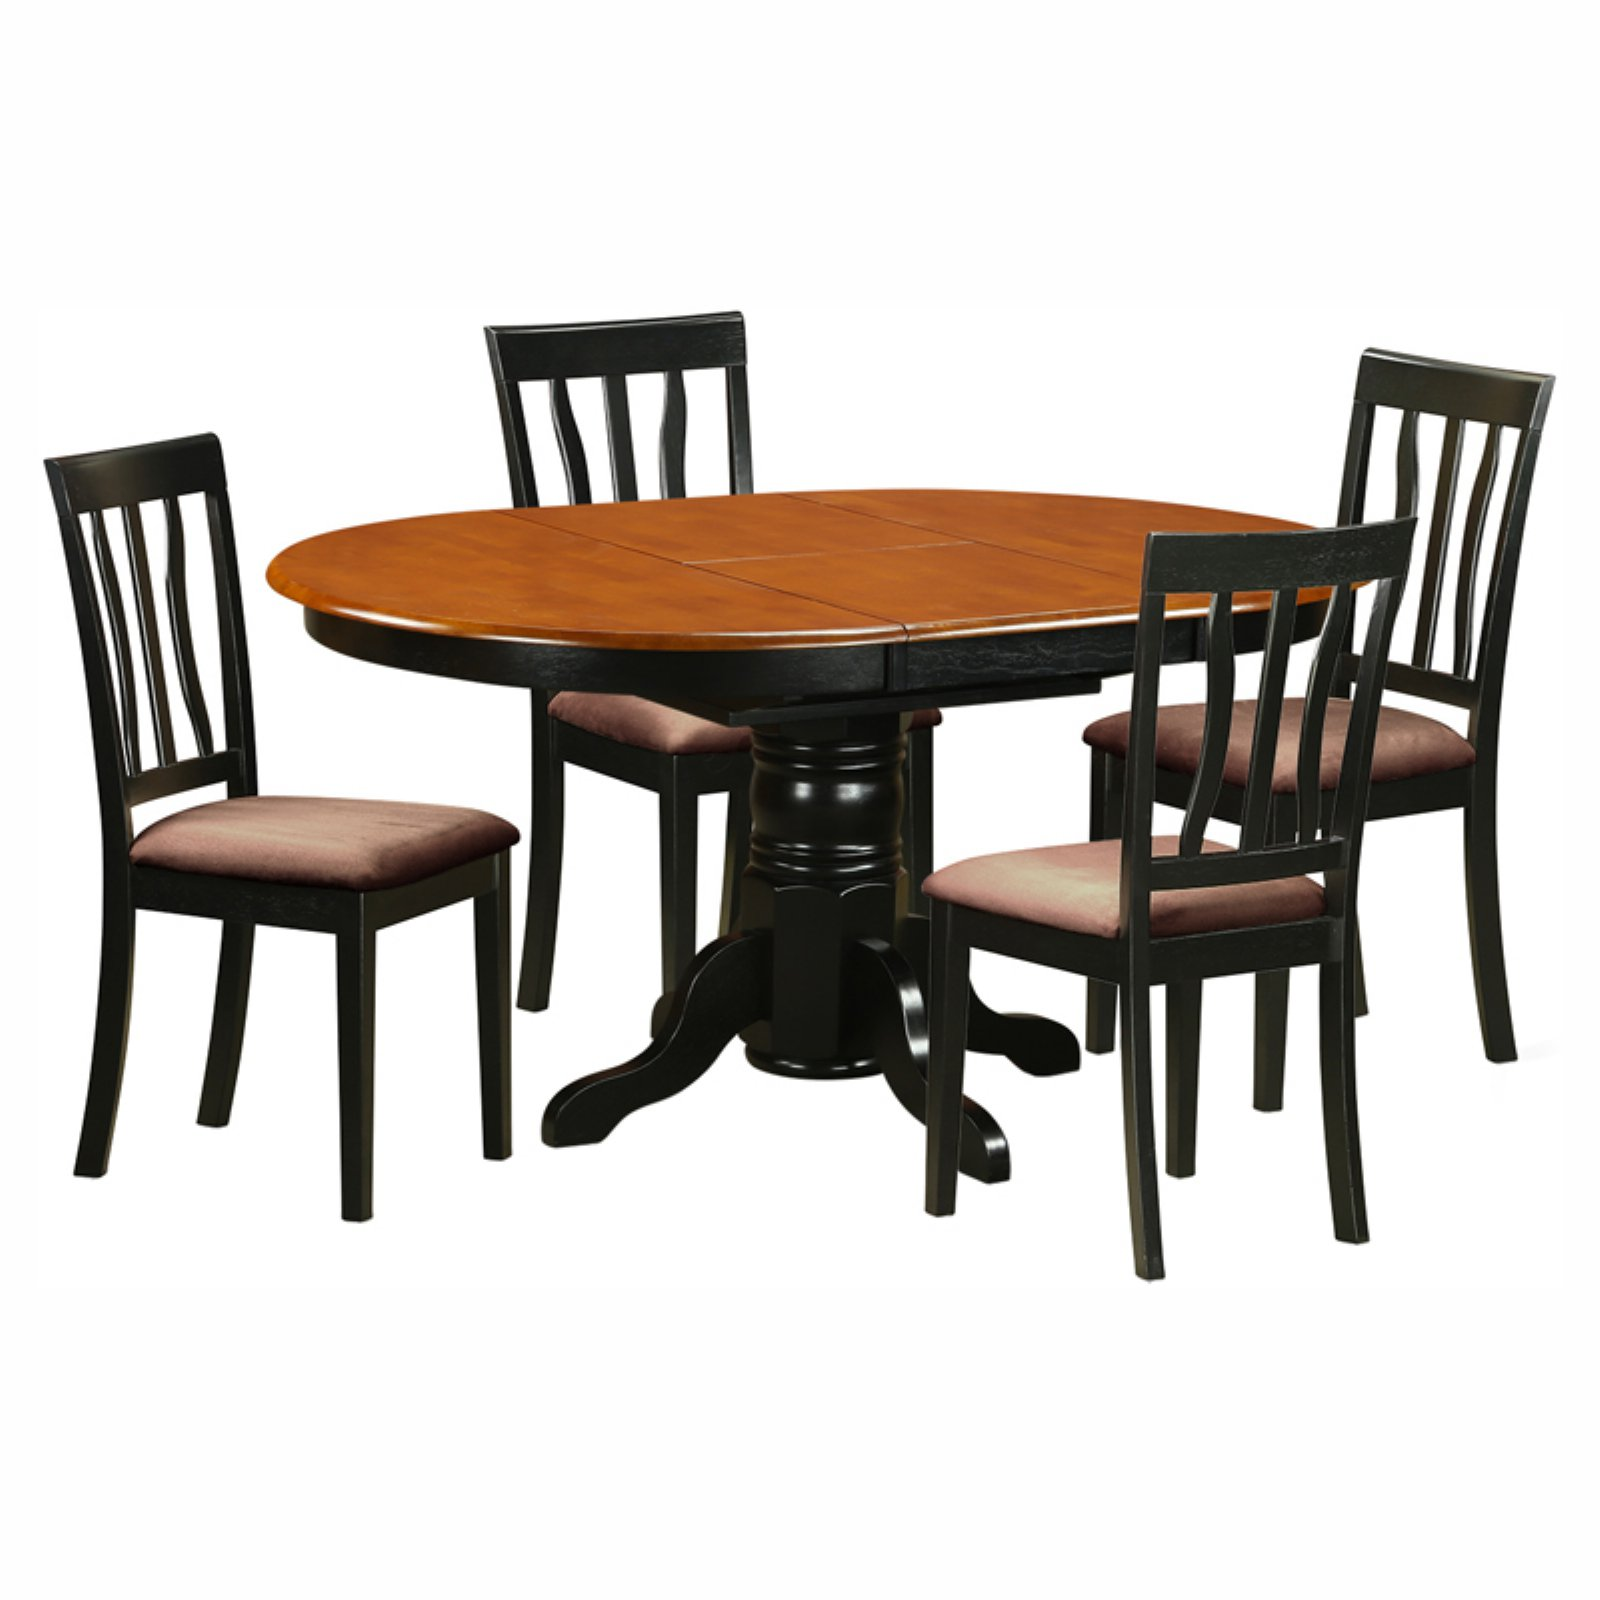 East West Furniture Avon 5 Piece Pedestal Oval Dining Table Set with Antique Microfiber Seat Chairs